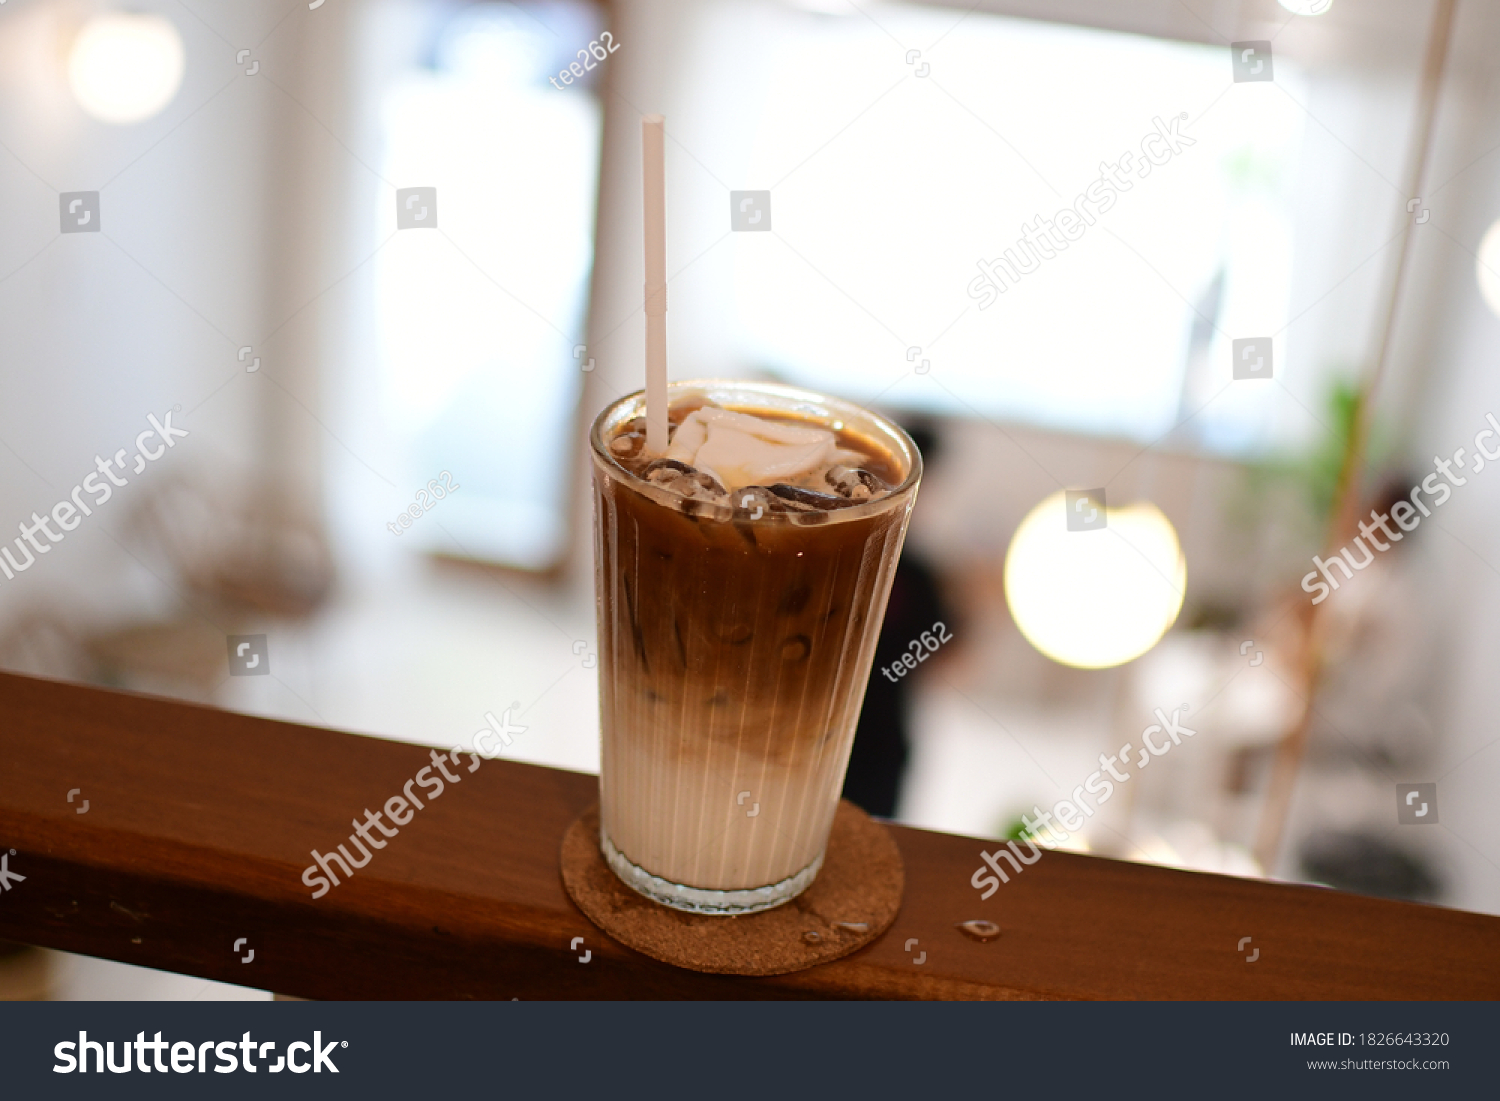 Iced Coffee Cafe Iced Coffee Thailand Miscellaneous Stock Image 1826643320